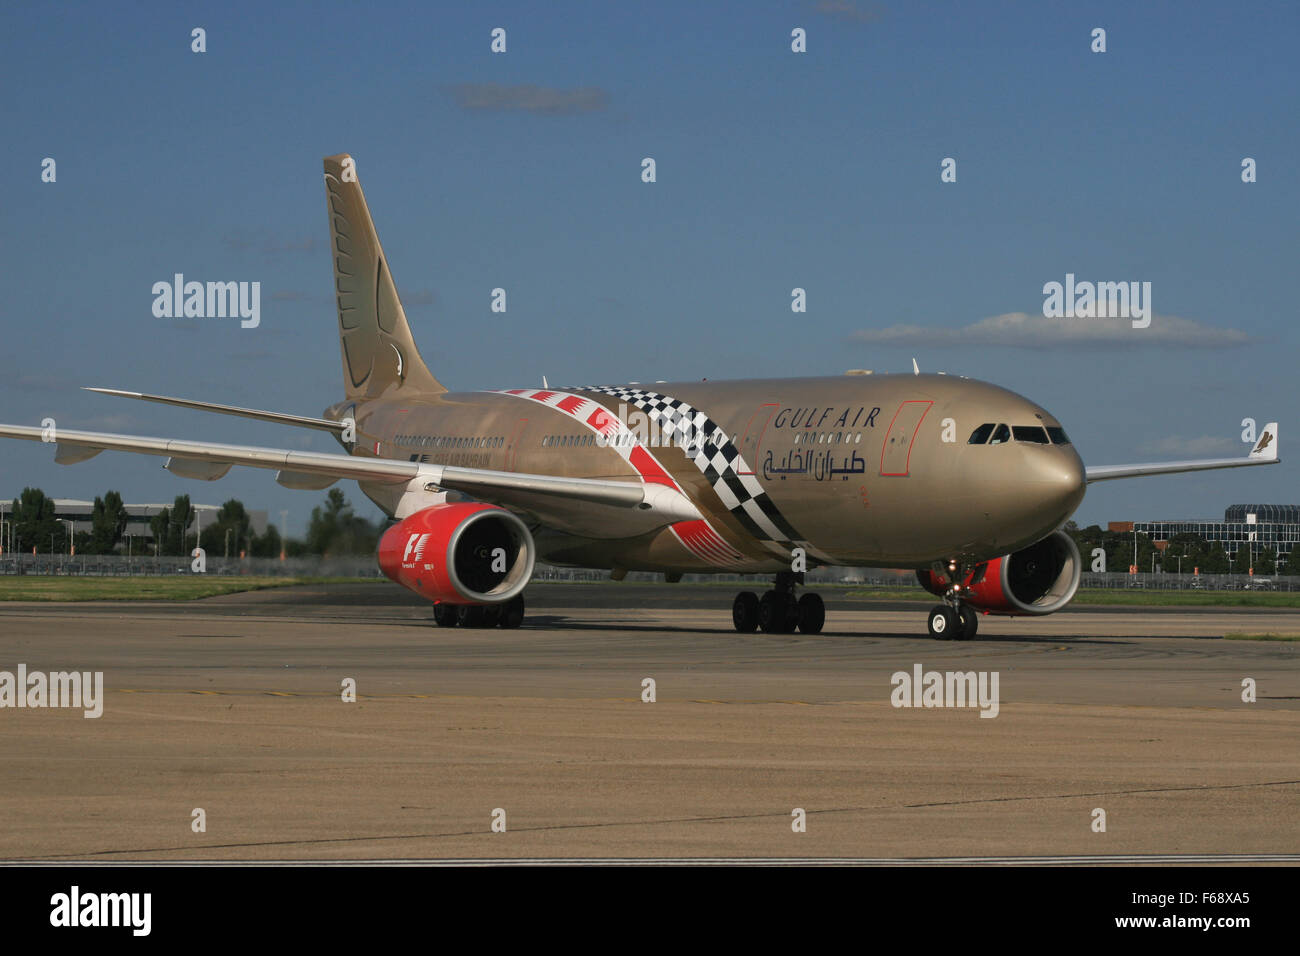 GULF AIR A330 IN FORMULA ONE COLOURS - Stock Image